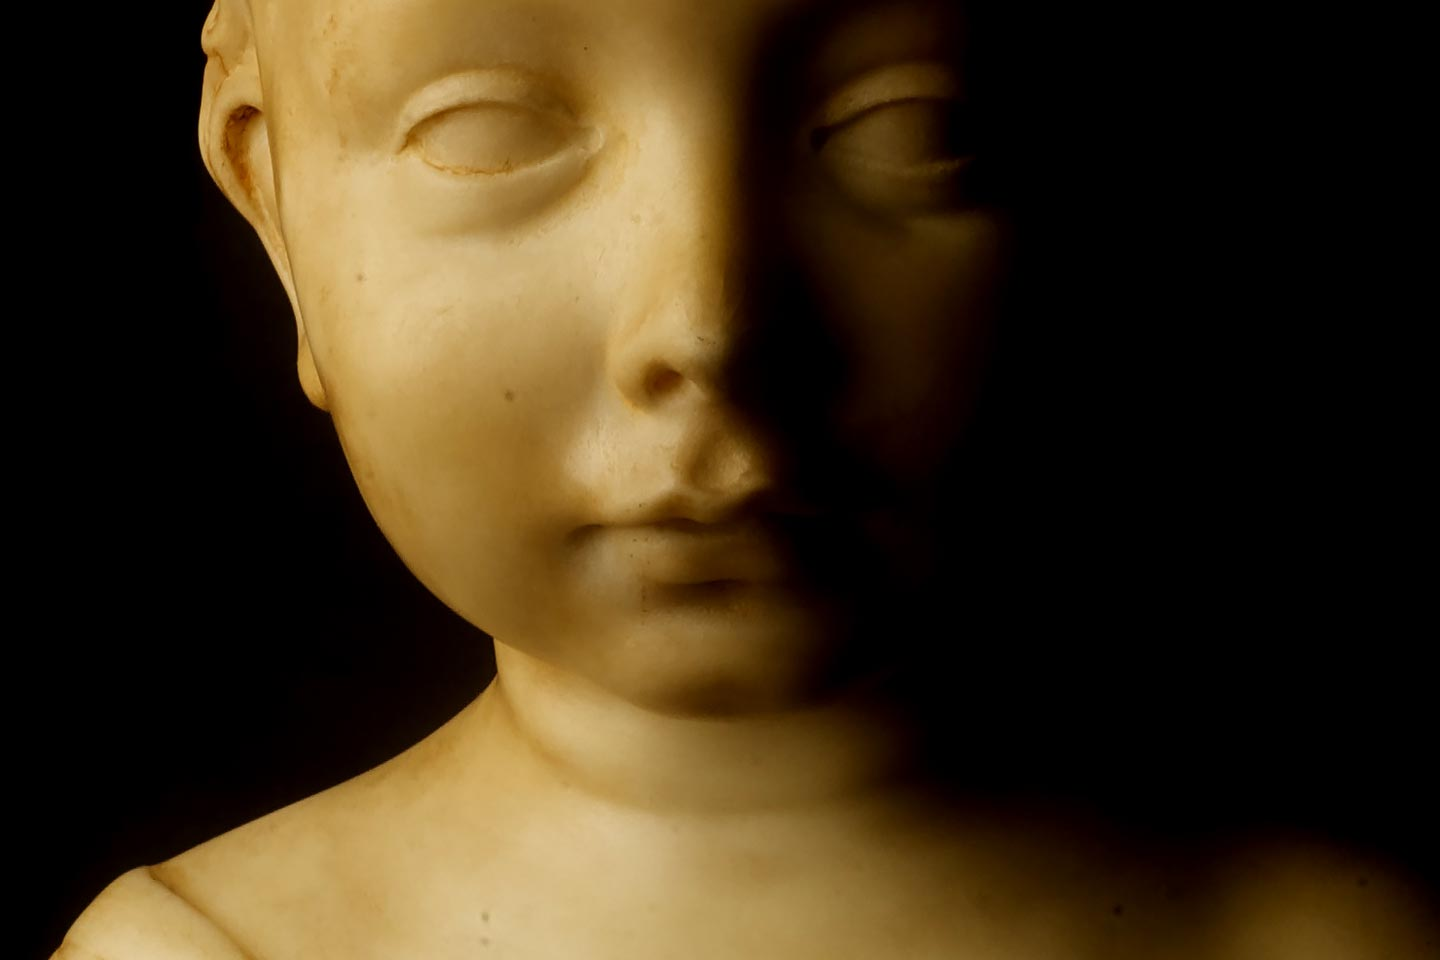 Bust of a Child from Private Collection, Neoclassical Art, 18th Century